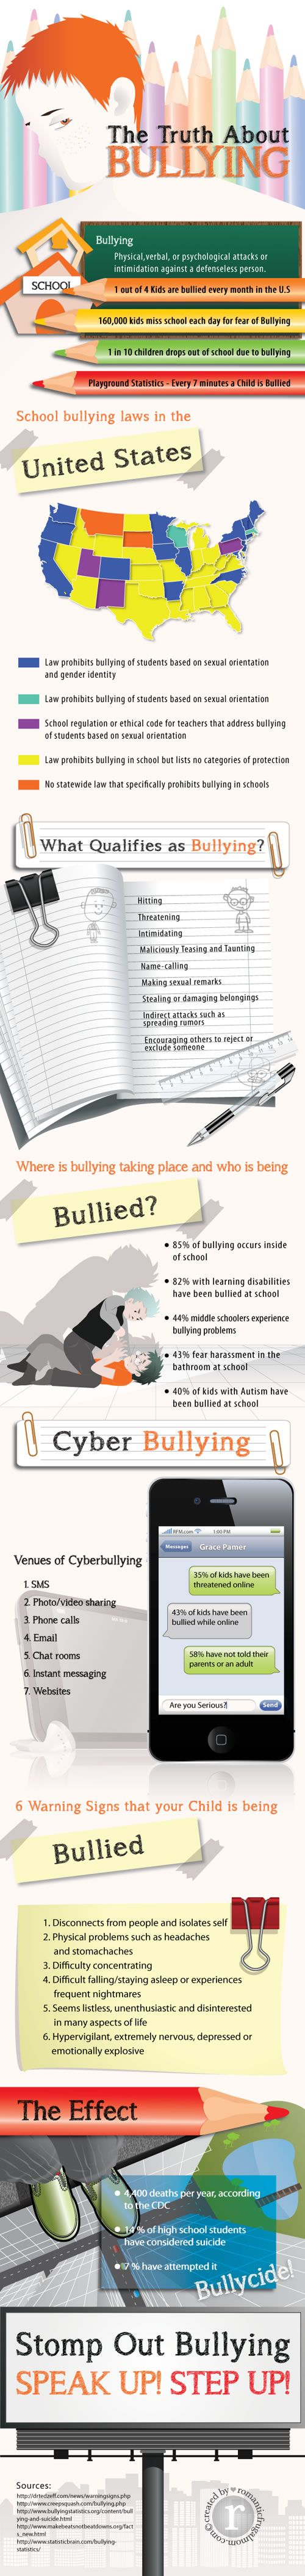 the truth about bullying The truth about bullying solved the mystery of year 3, class 5.